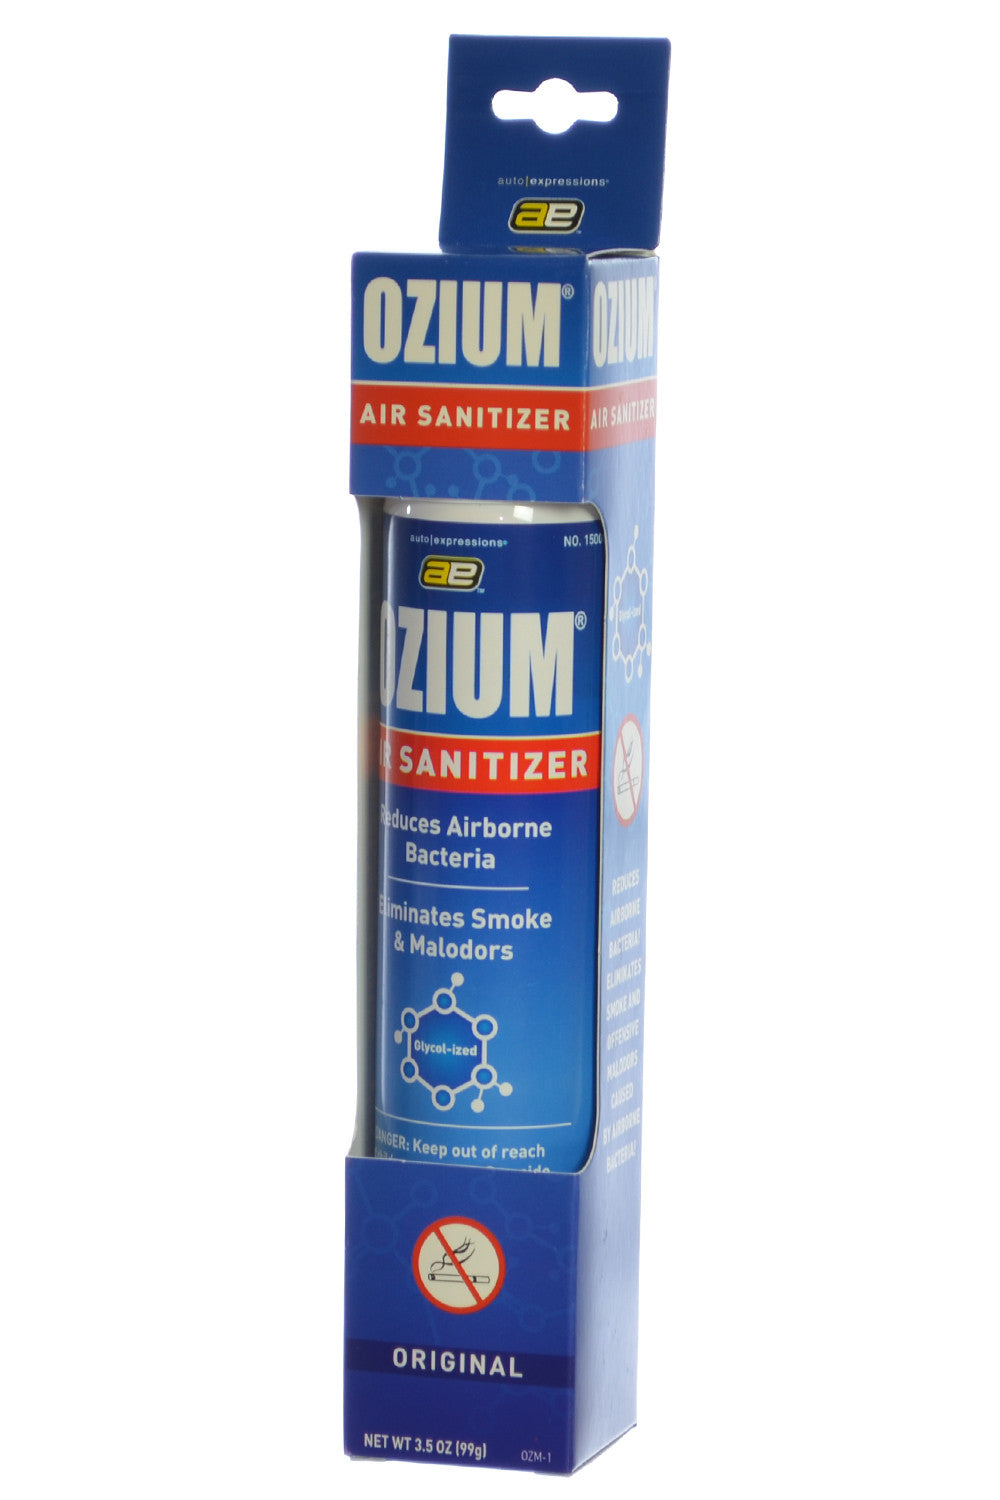 ozium cigarette smoke air sanitizer eliminates smoke smell aerosol spray original pack. Black Bedroom Furniture Sets. Home Design Ideas